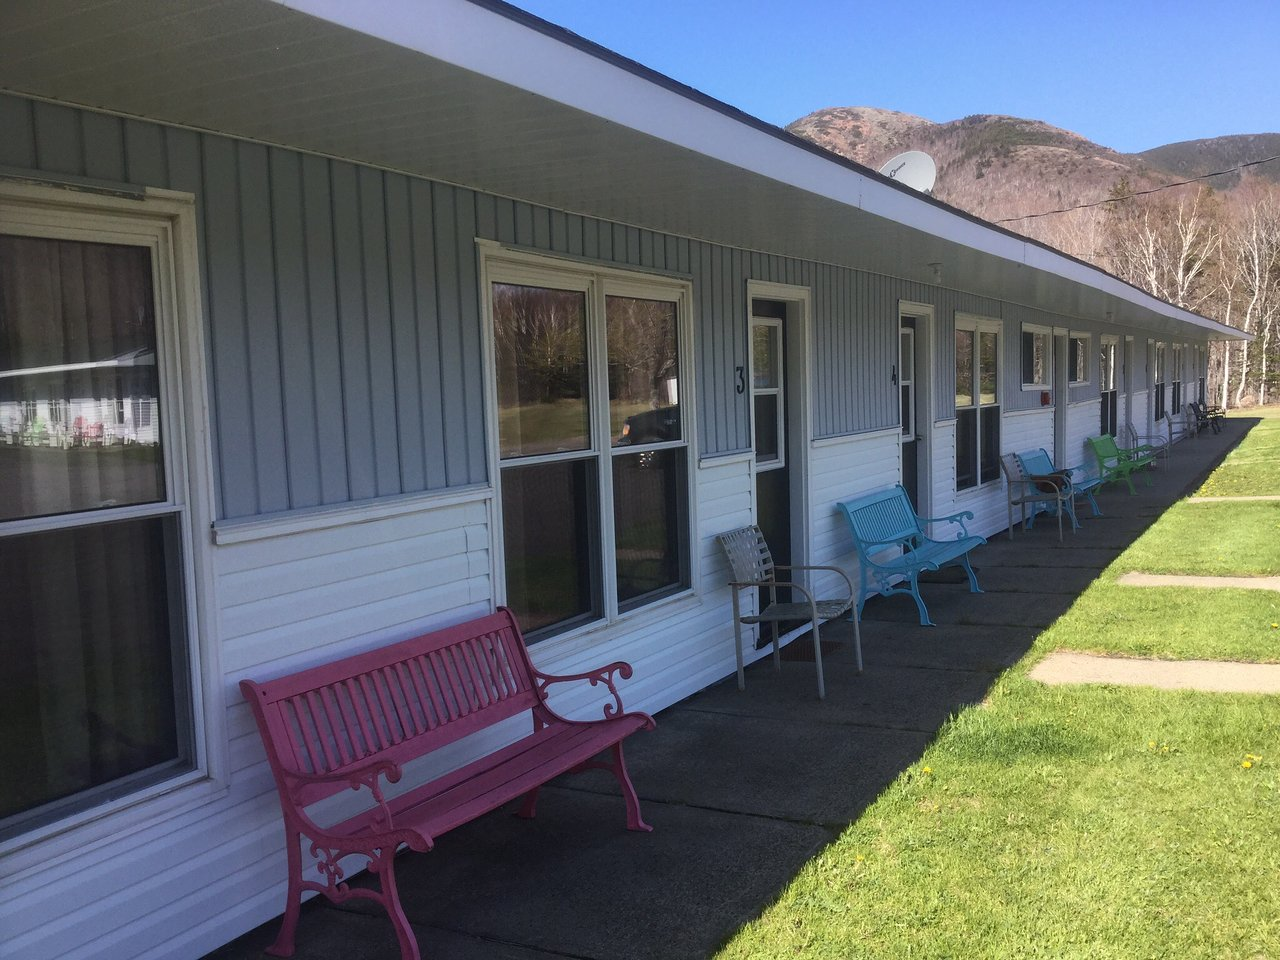 the mountain view motel cottages 71 8 5 updated 2019 rh tripadvisor com